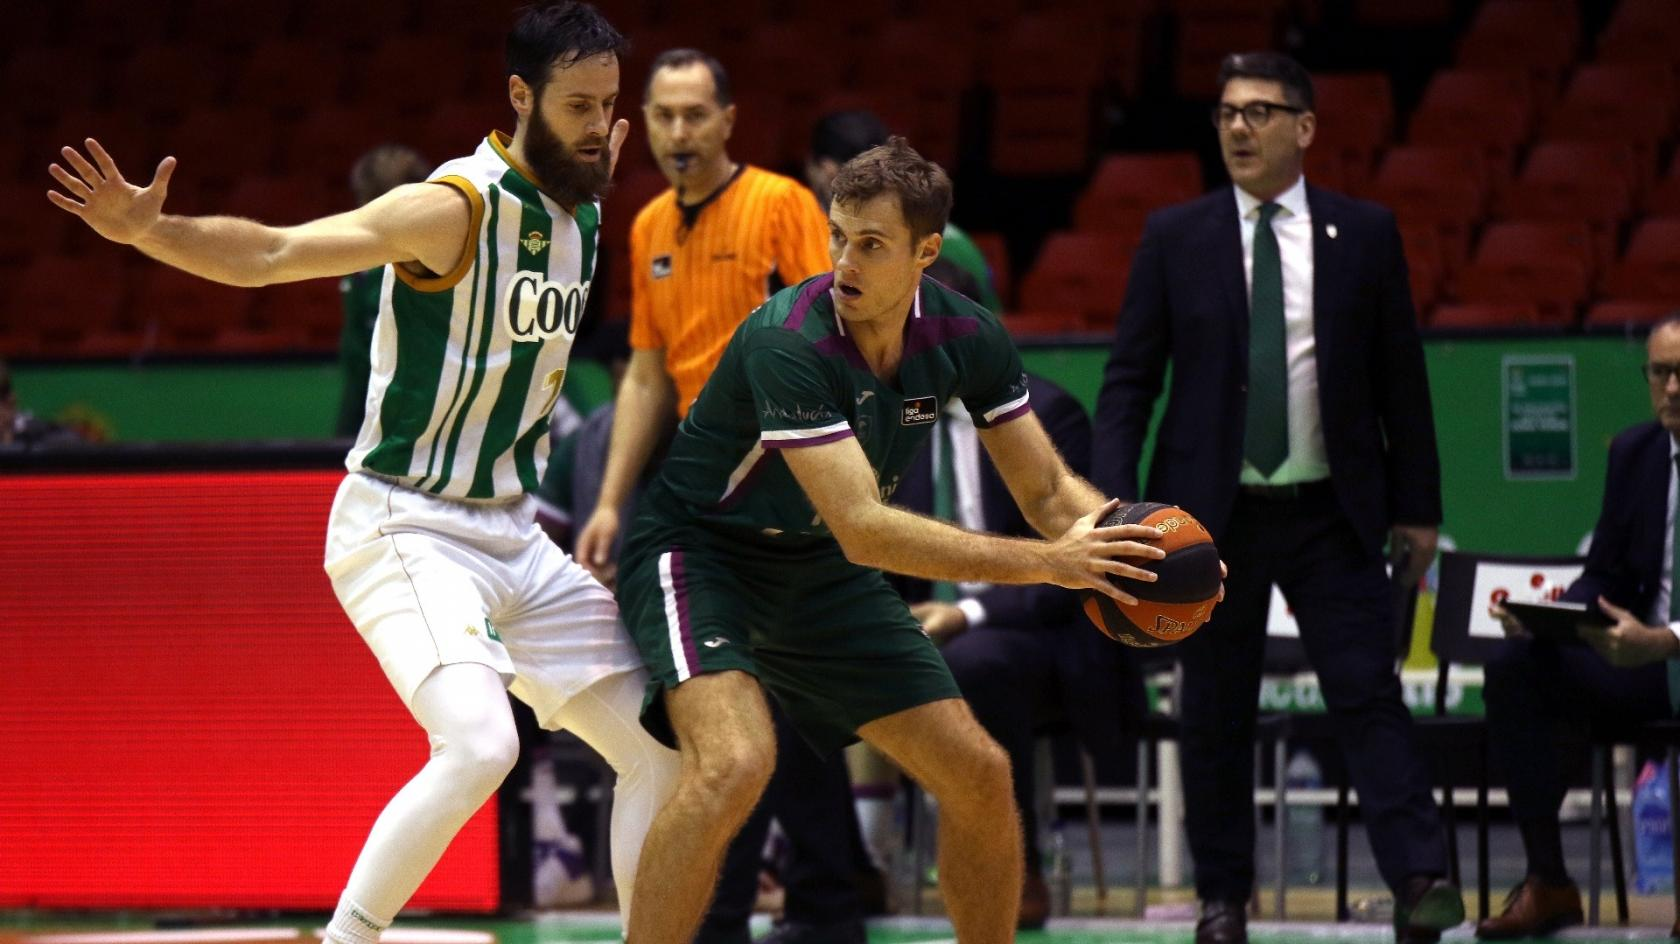 The lack of accuracy condemns Unicaja in Seville (78-75)